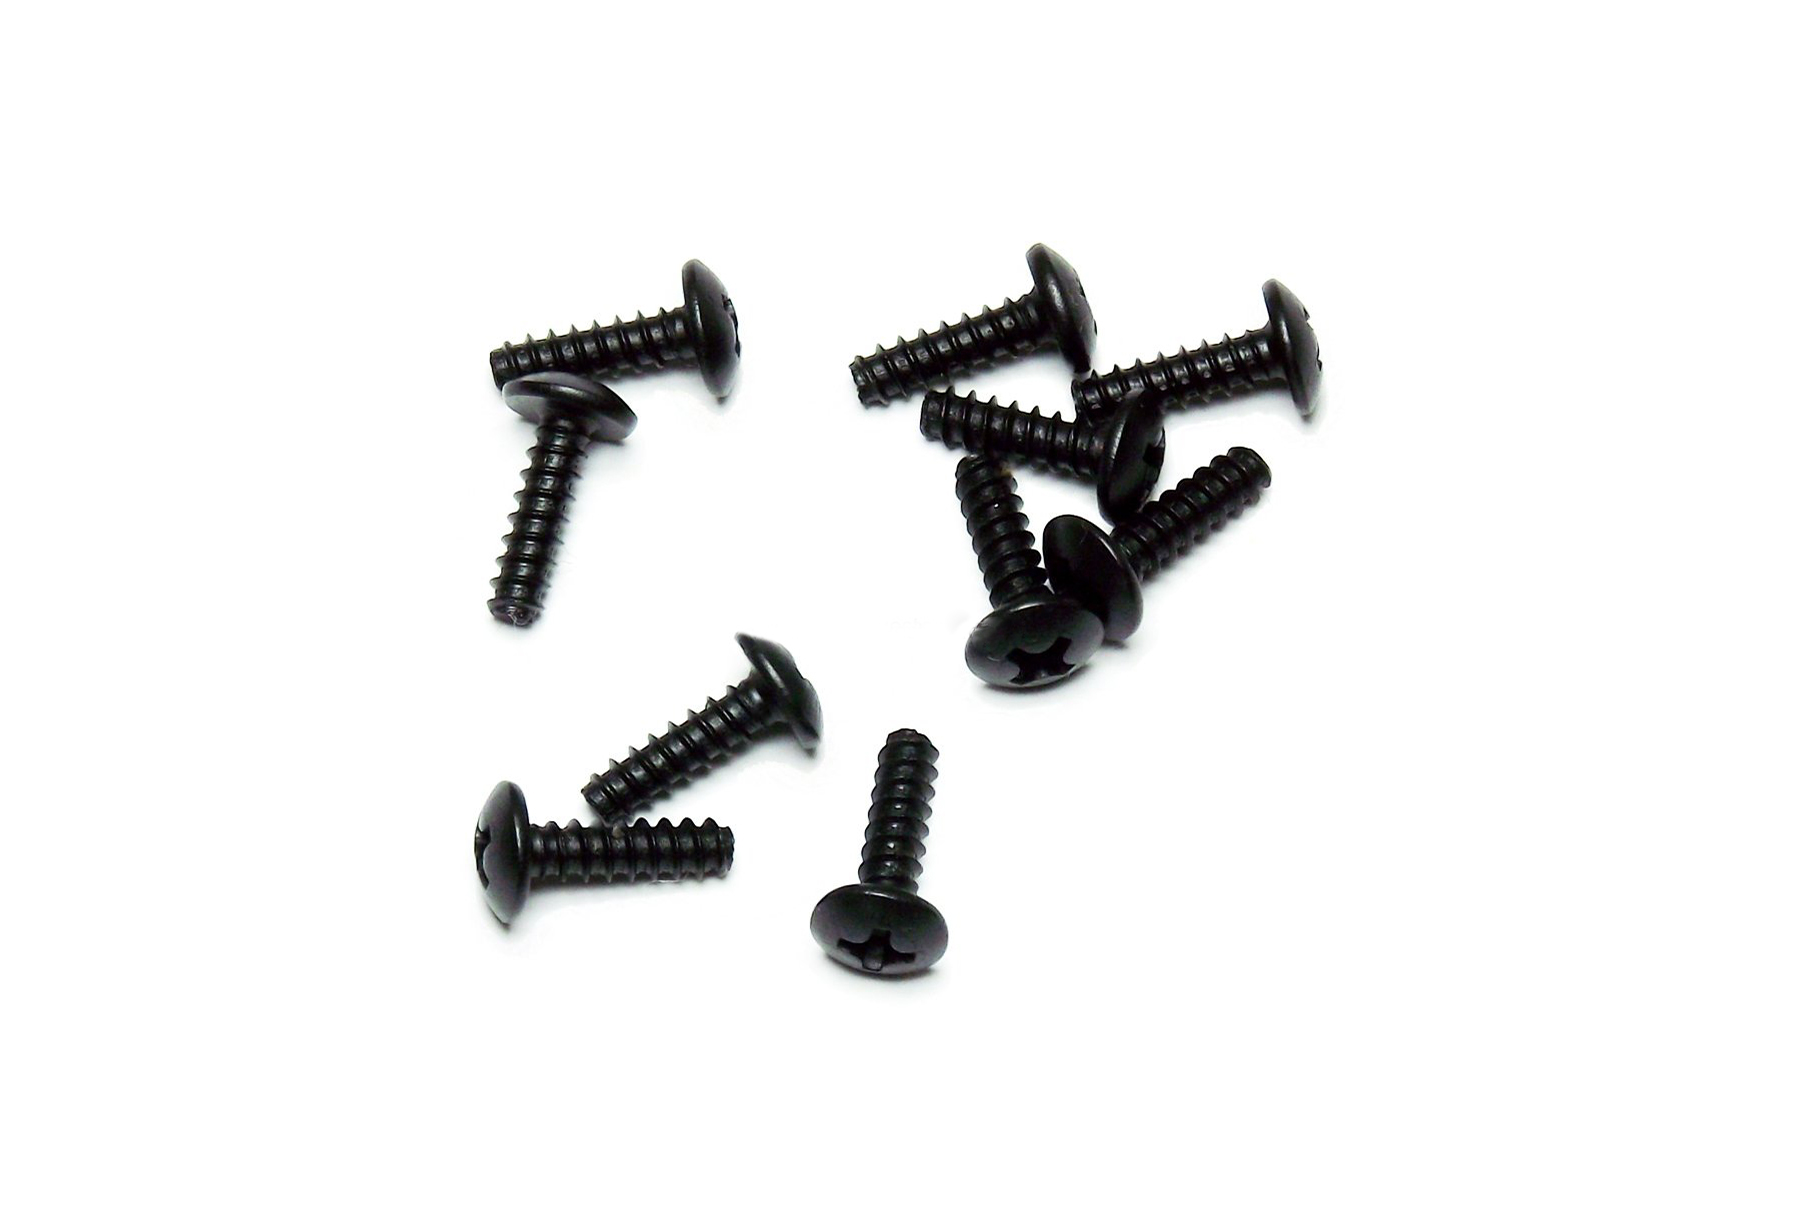 HSP запчасти BT 3*10 BH Screw HSP02082